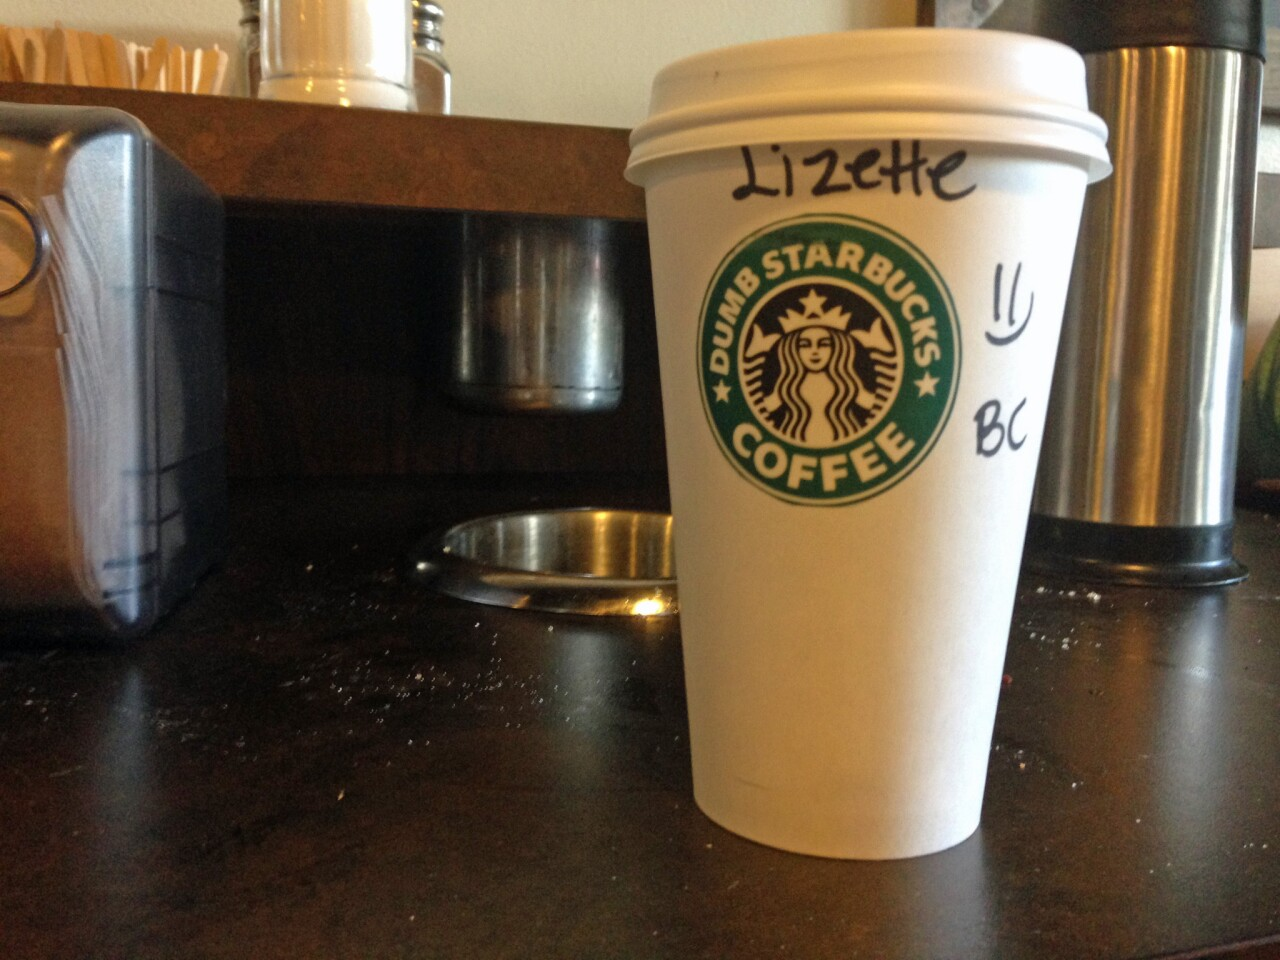 A Dumb Starbucks cup with its pasted-on sticker.